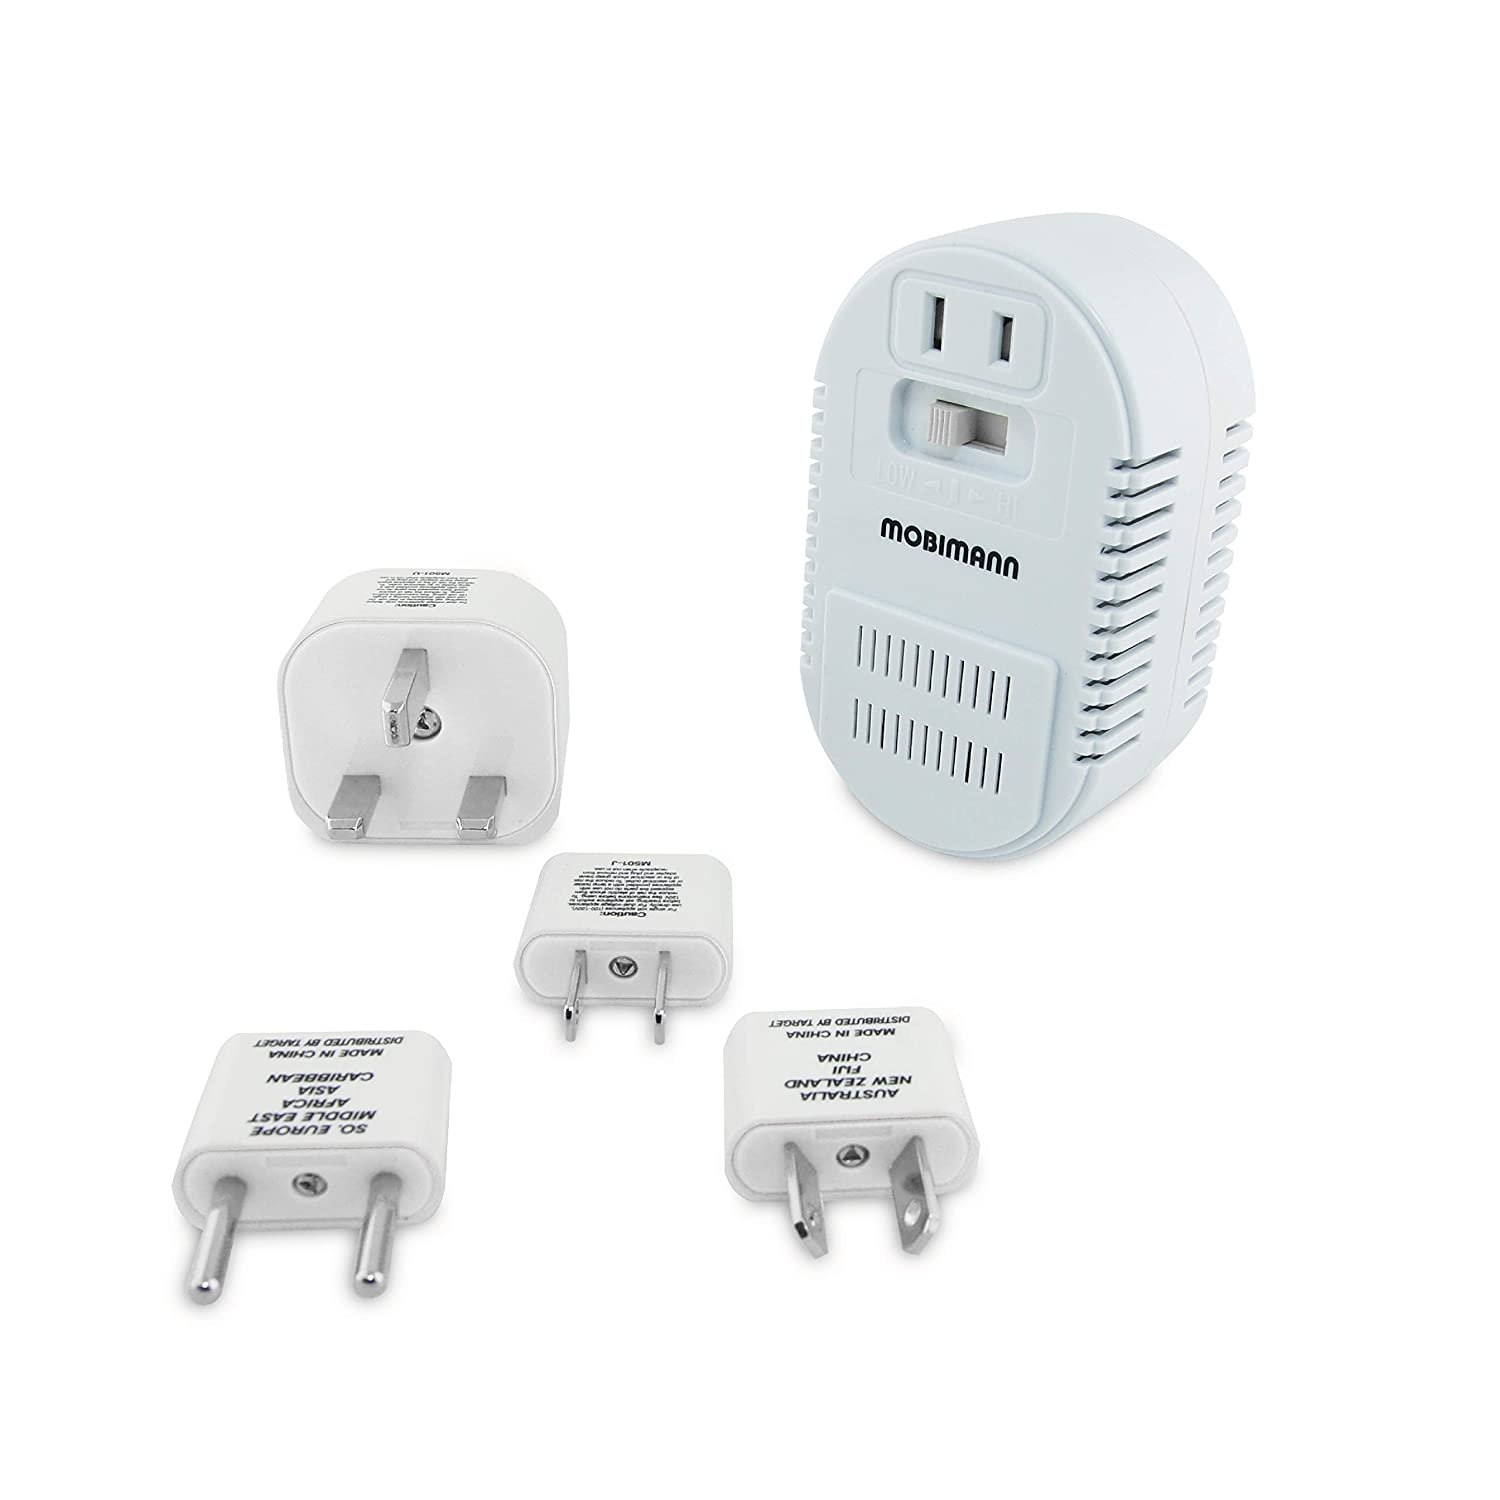 Mobimann 25W/1875W Dual Wattage Universal World Travel Adapter and Voltage Converter - 220V to 110V Transformer for Hair Dryer Cell Phone - with 4 Adapter US/AU/UK/EU2.5A Plugs Included